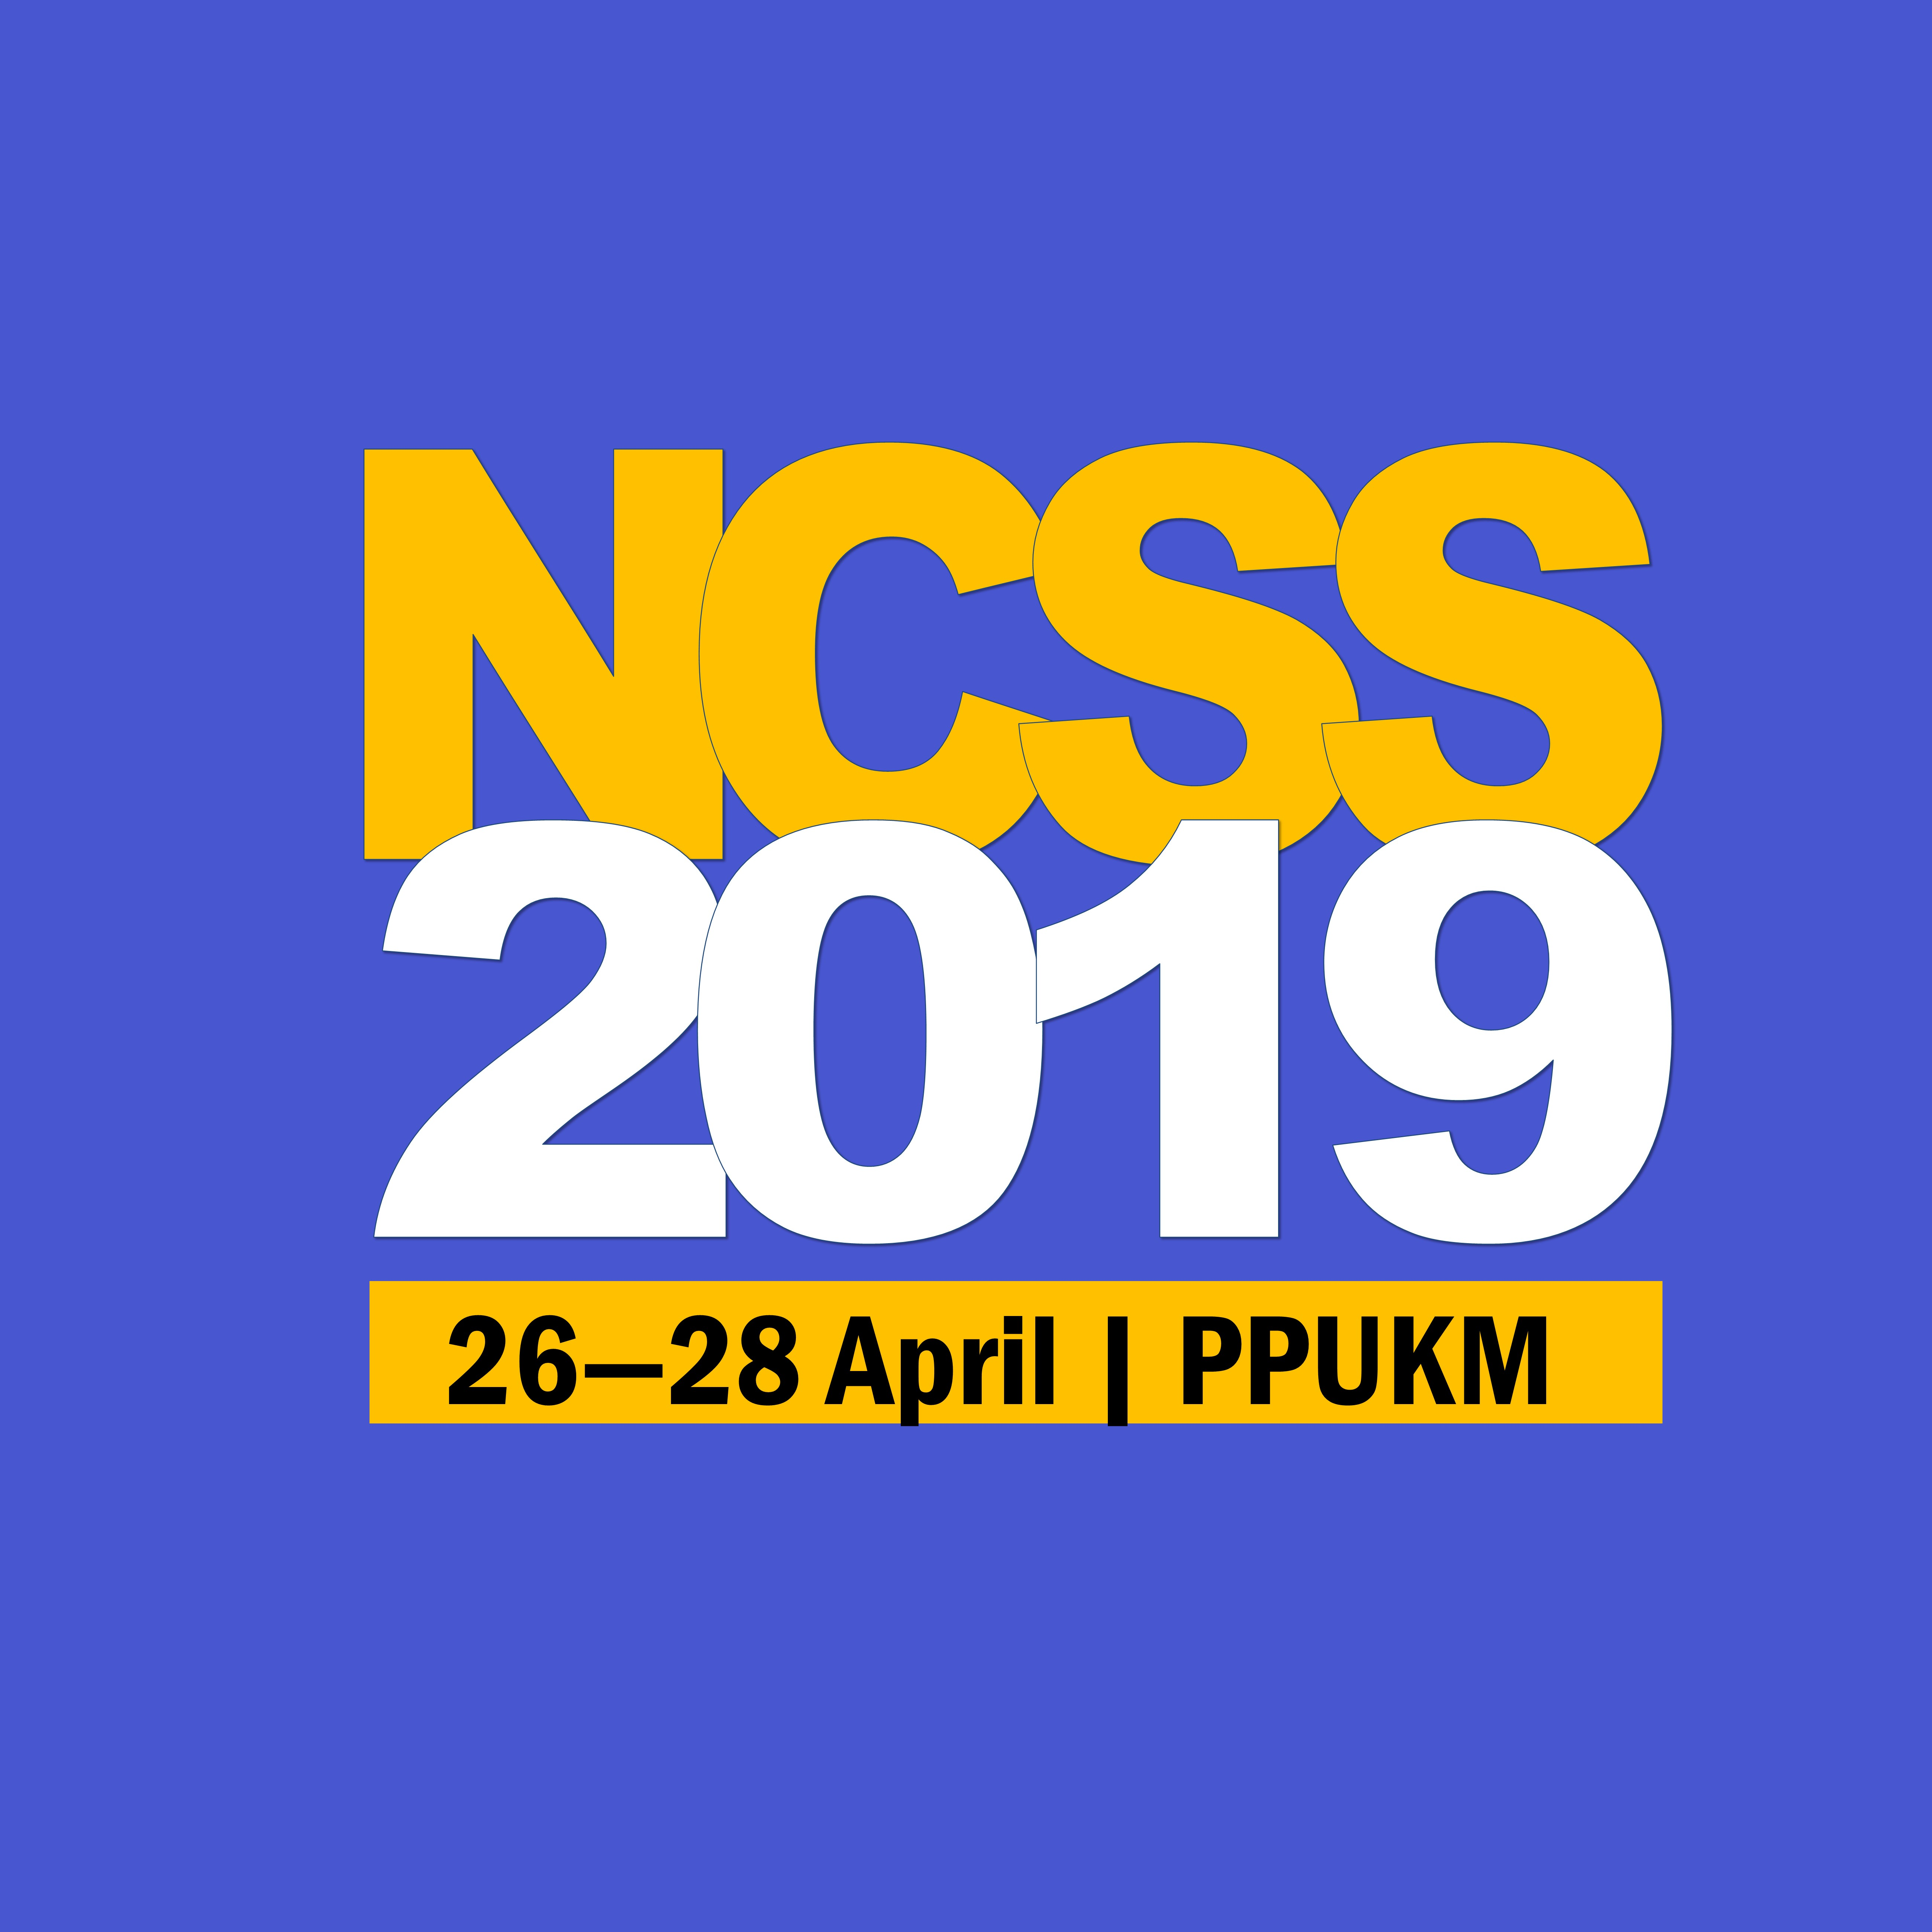 NCSS 2019